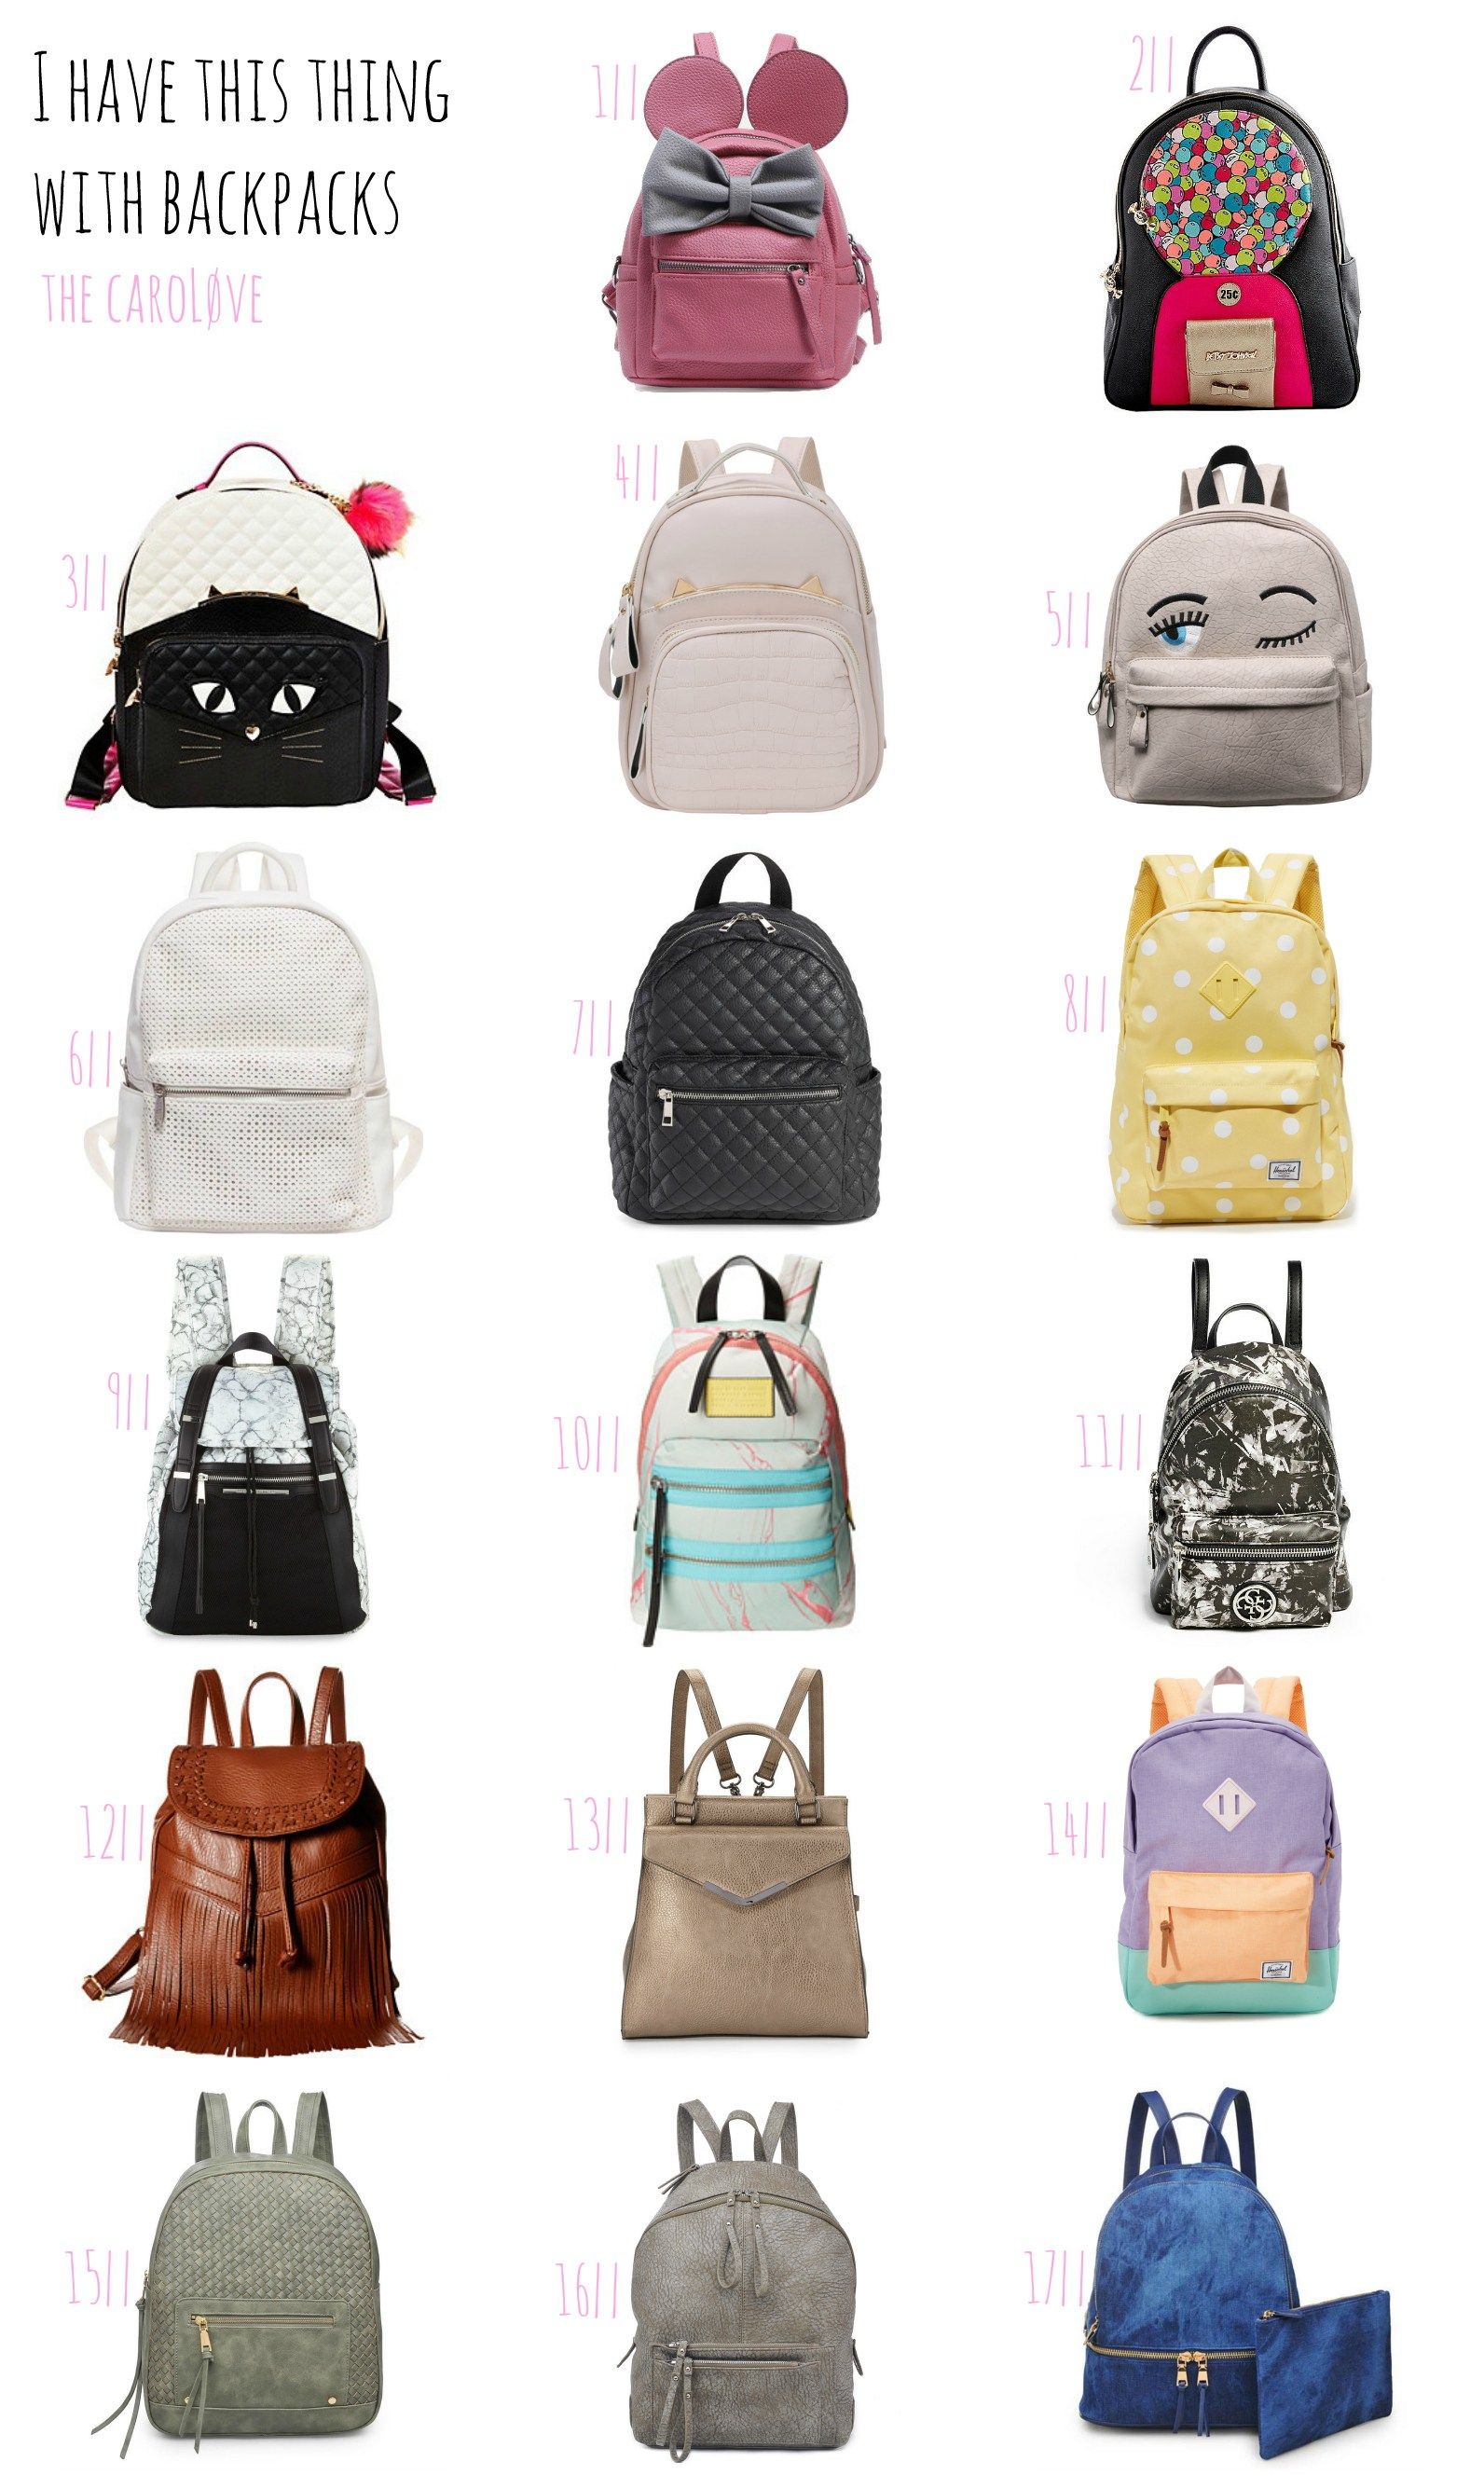 The CaroLøve I have this think with backpacks Stylish